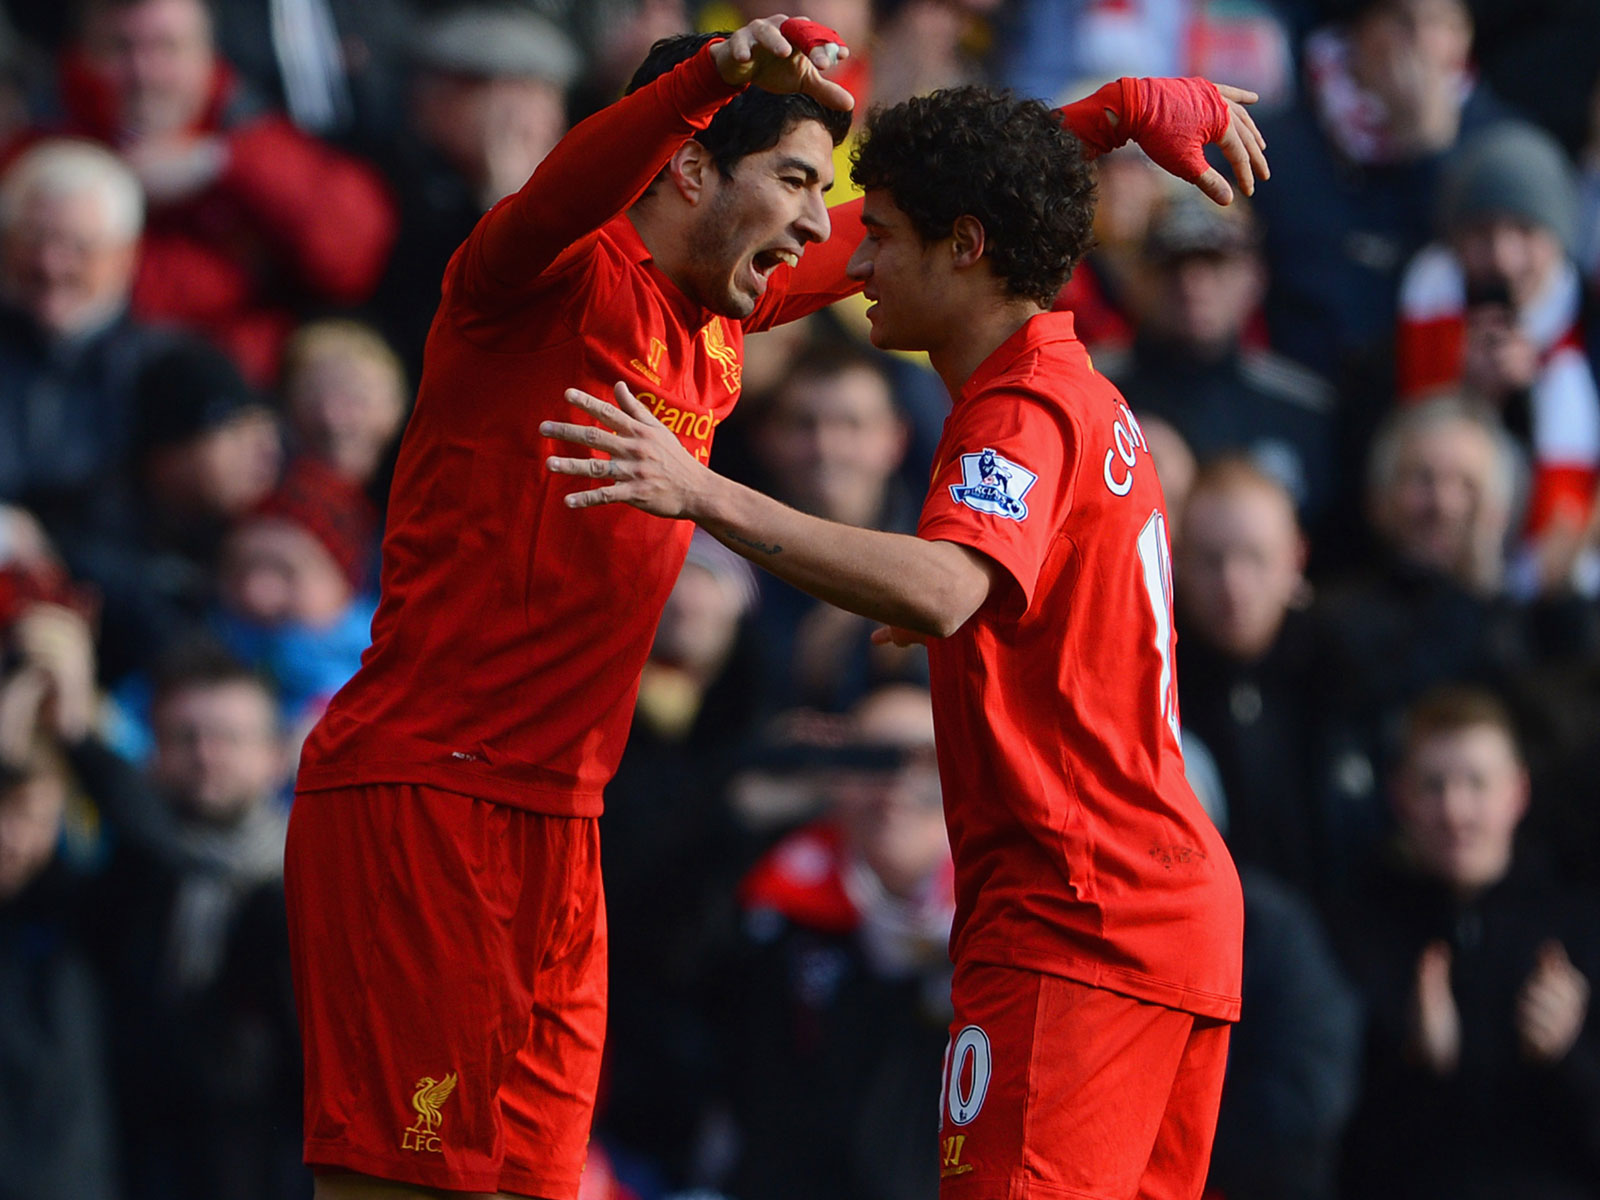 Luis Suarez and Philippe Coutinho will face their former club